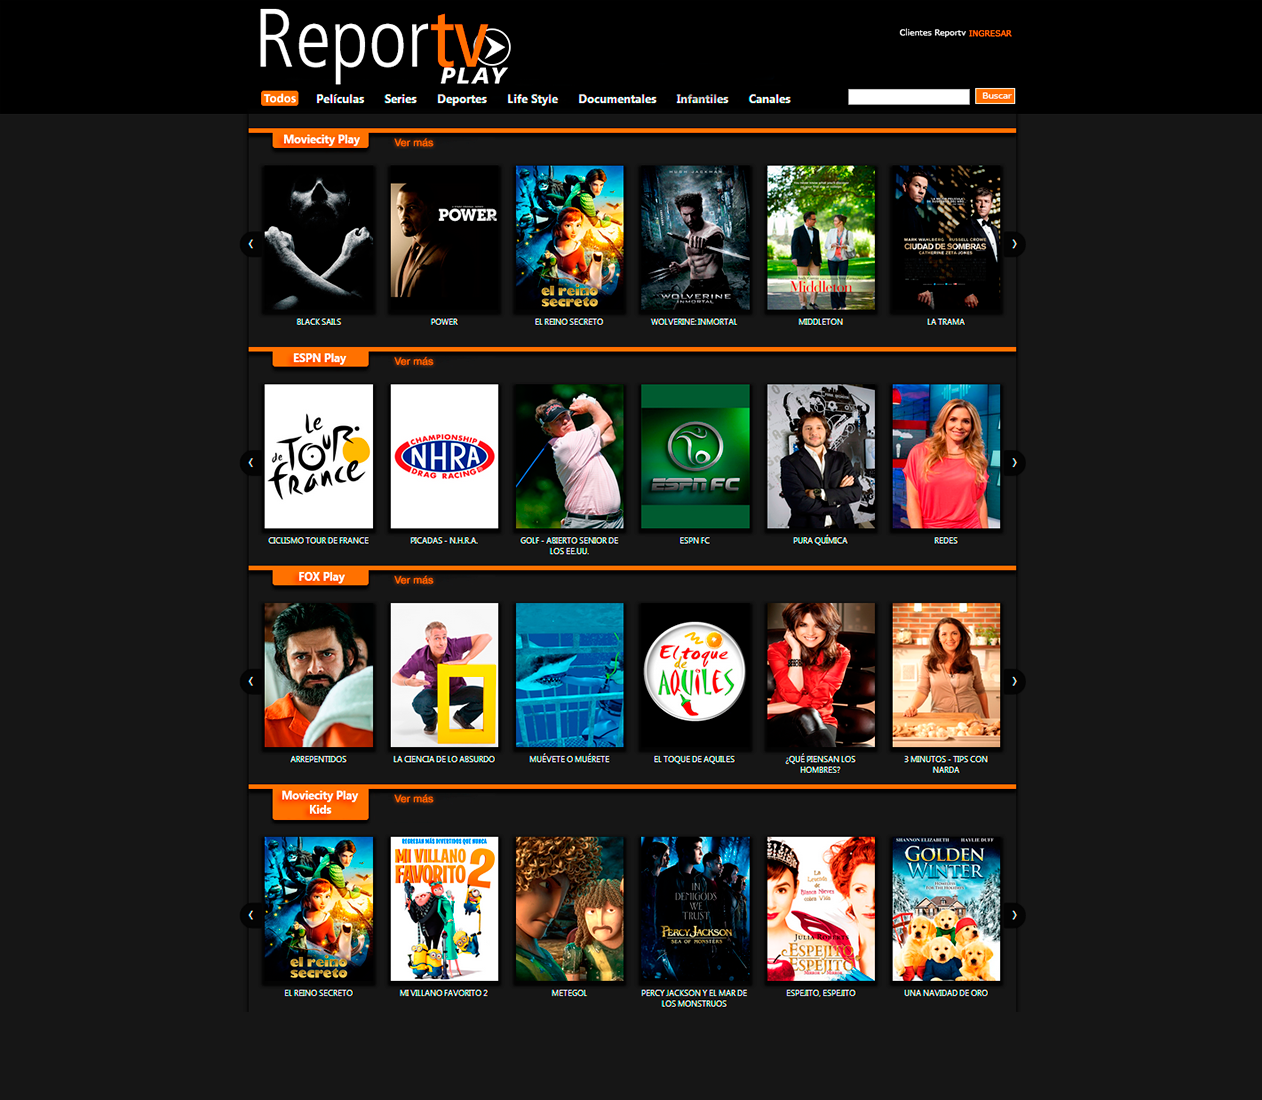 Reportv Play